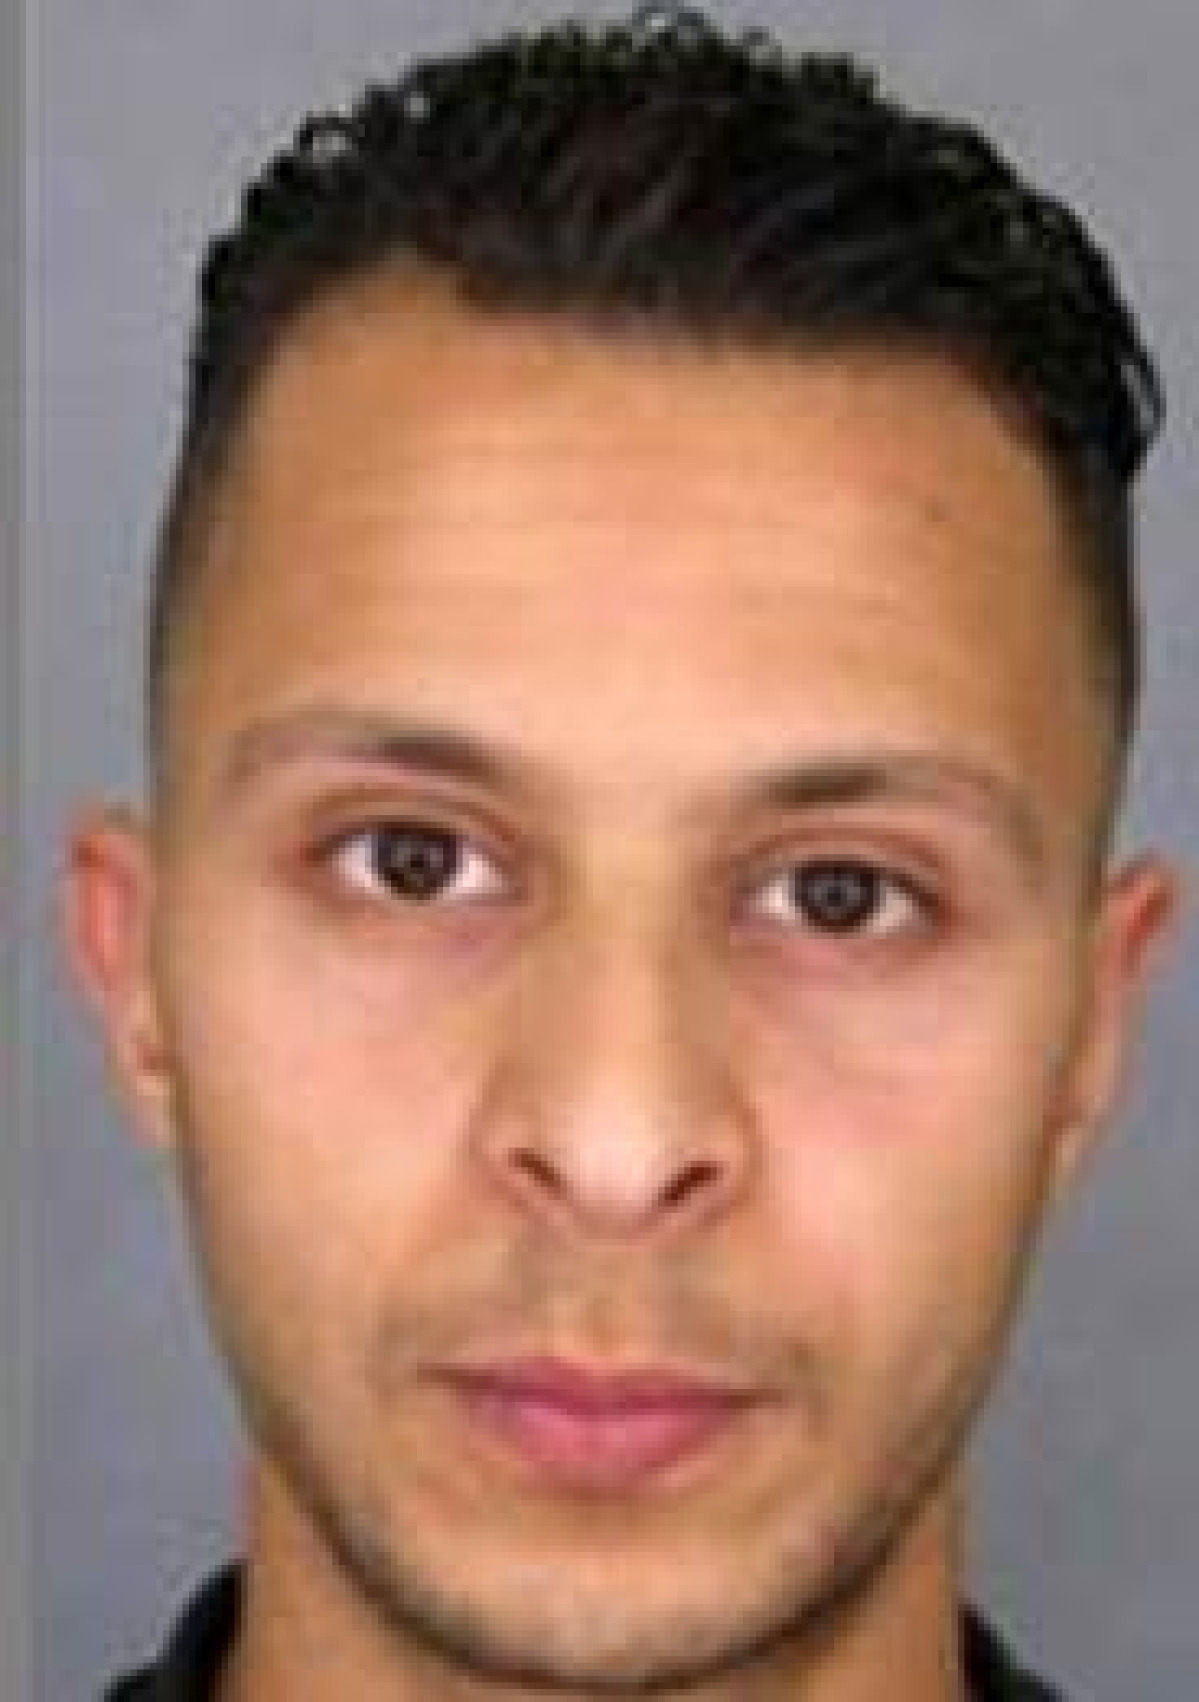 French prosecutor: Key Paris attacks suspect moved to France